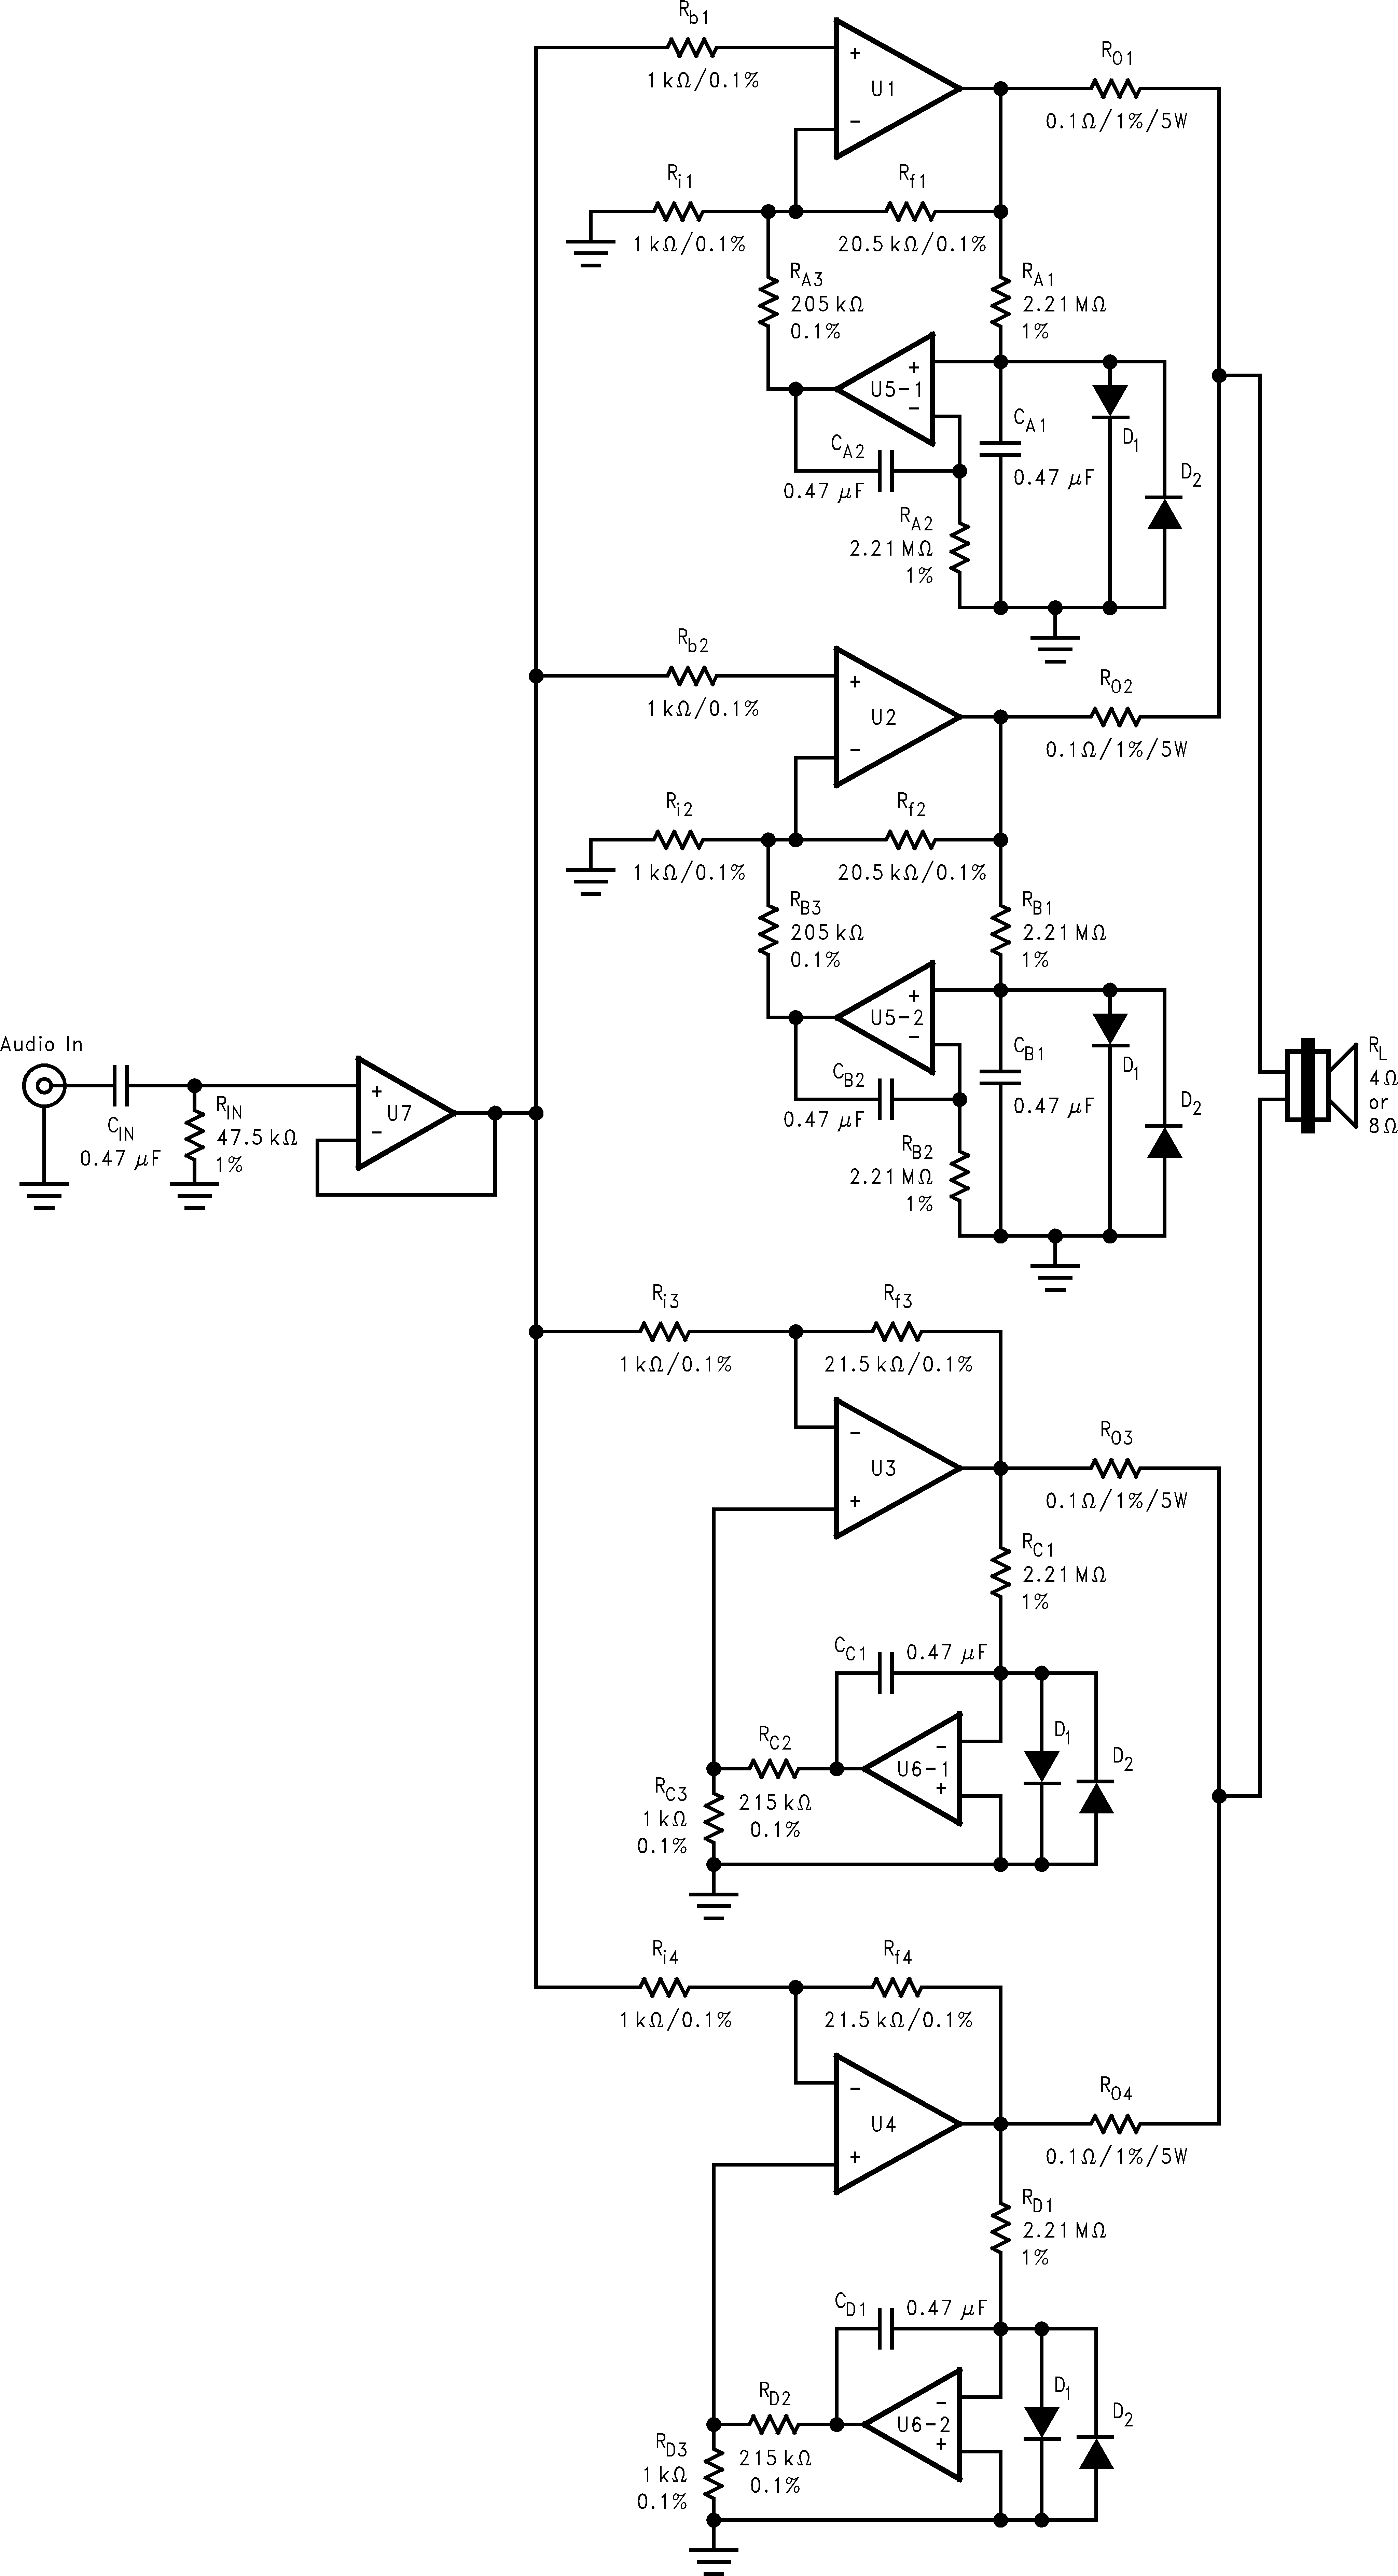 BPA200 200W Bridged/Parallel Circuit 7.2 Schematics www.ti.com 7.2.1 Detailed Bridged/Parallel Amplifier Schematic Figure 13.